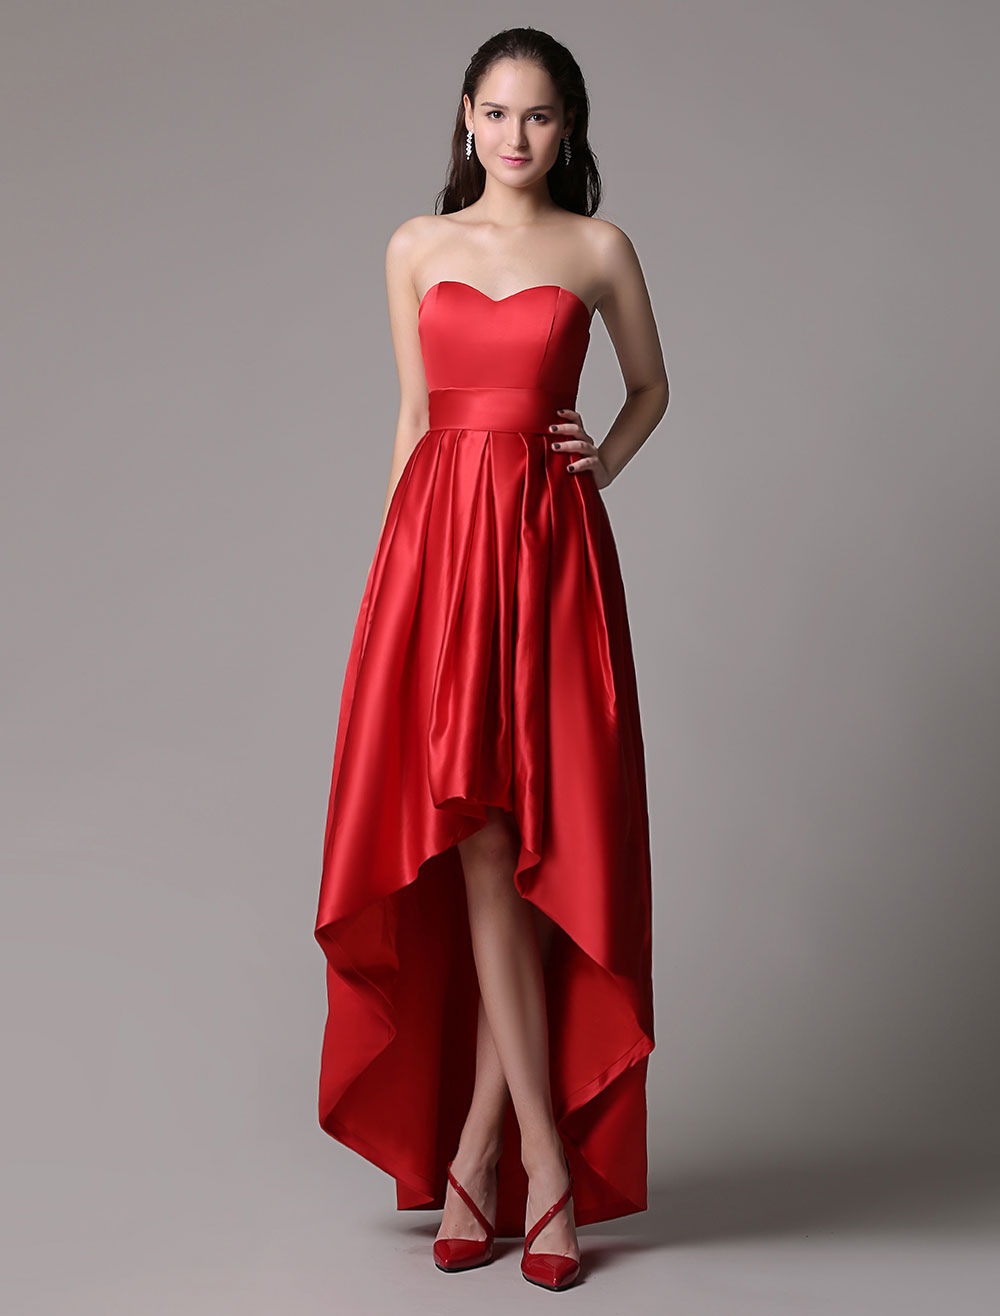 Buy Red Prom Dresses 2018 Short Strapless Backless Cocktail Dress Sweetheart Satin Ruched High Low Party Dress for $98.99 in Milanoo store